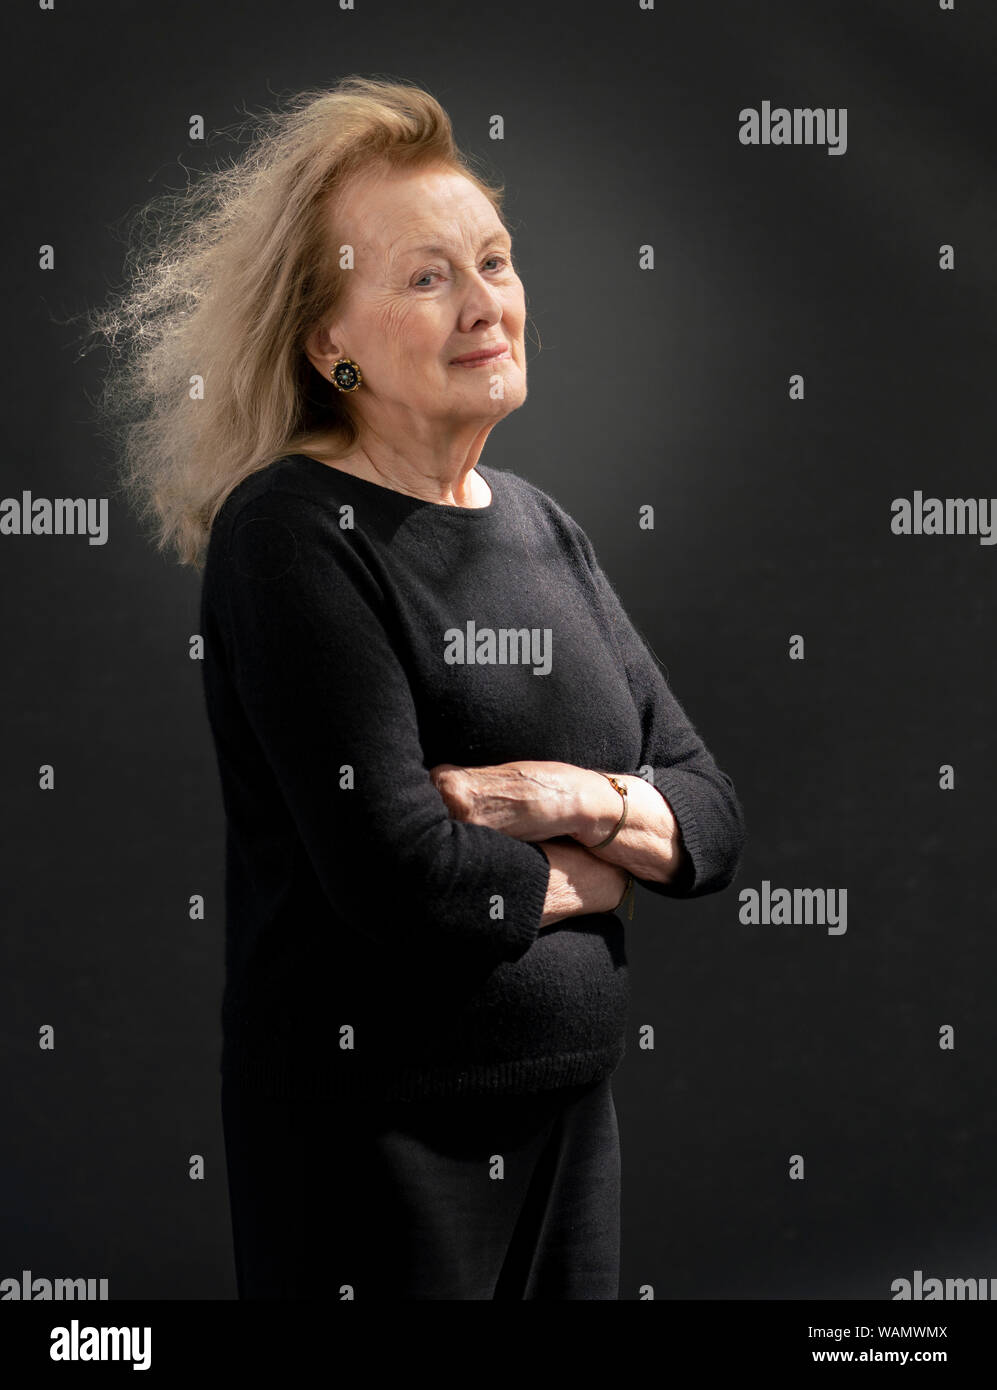 Edinburgh, Scotland, UK. 21 August 2019. Annie Ernaux  at Edinburgh International Book Festival 2019. Annie Ernaux's novel The Years is a collective memoir of post-war France from a lower middle-class perspective. Iain Masterton/Alamy Live News. Stock Photo